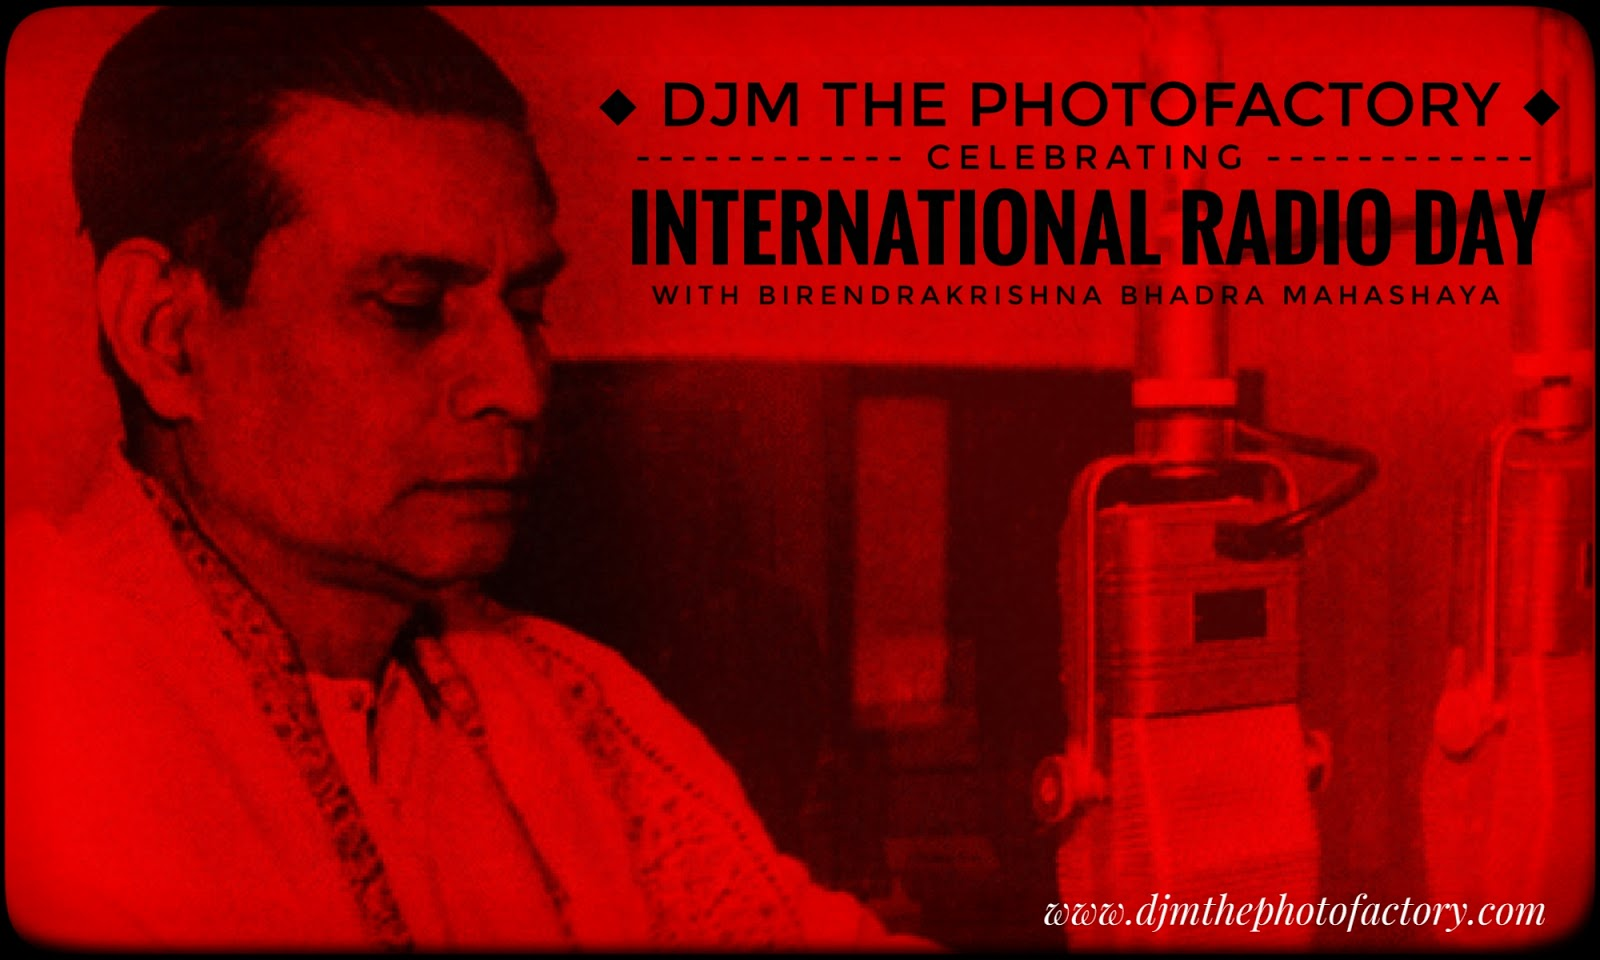 Birendra Krishna Bhadra Famous Bengali Radio FM radio jockey on National Radio day August 20